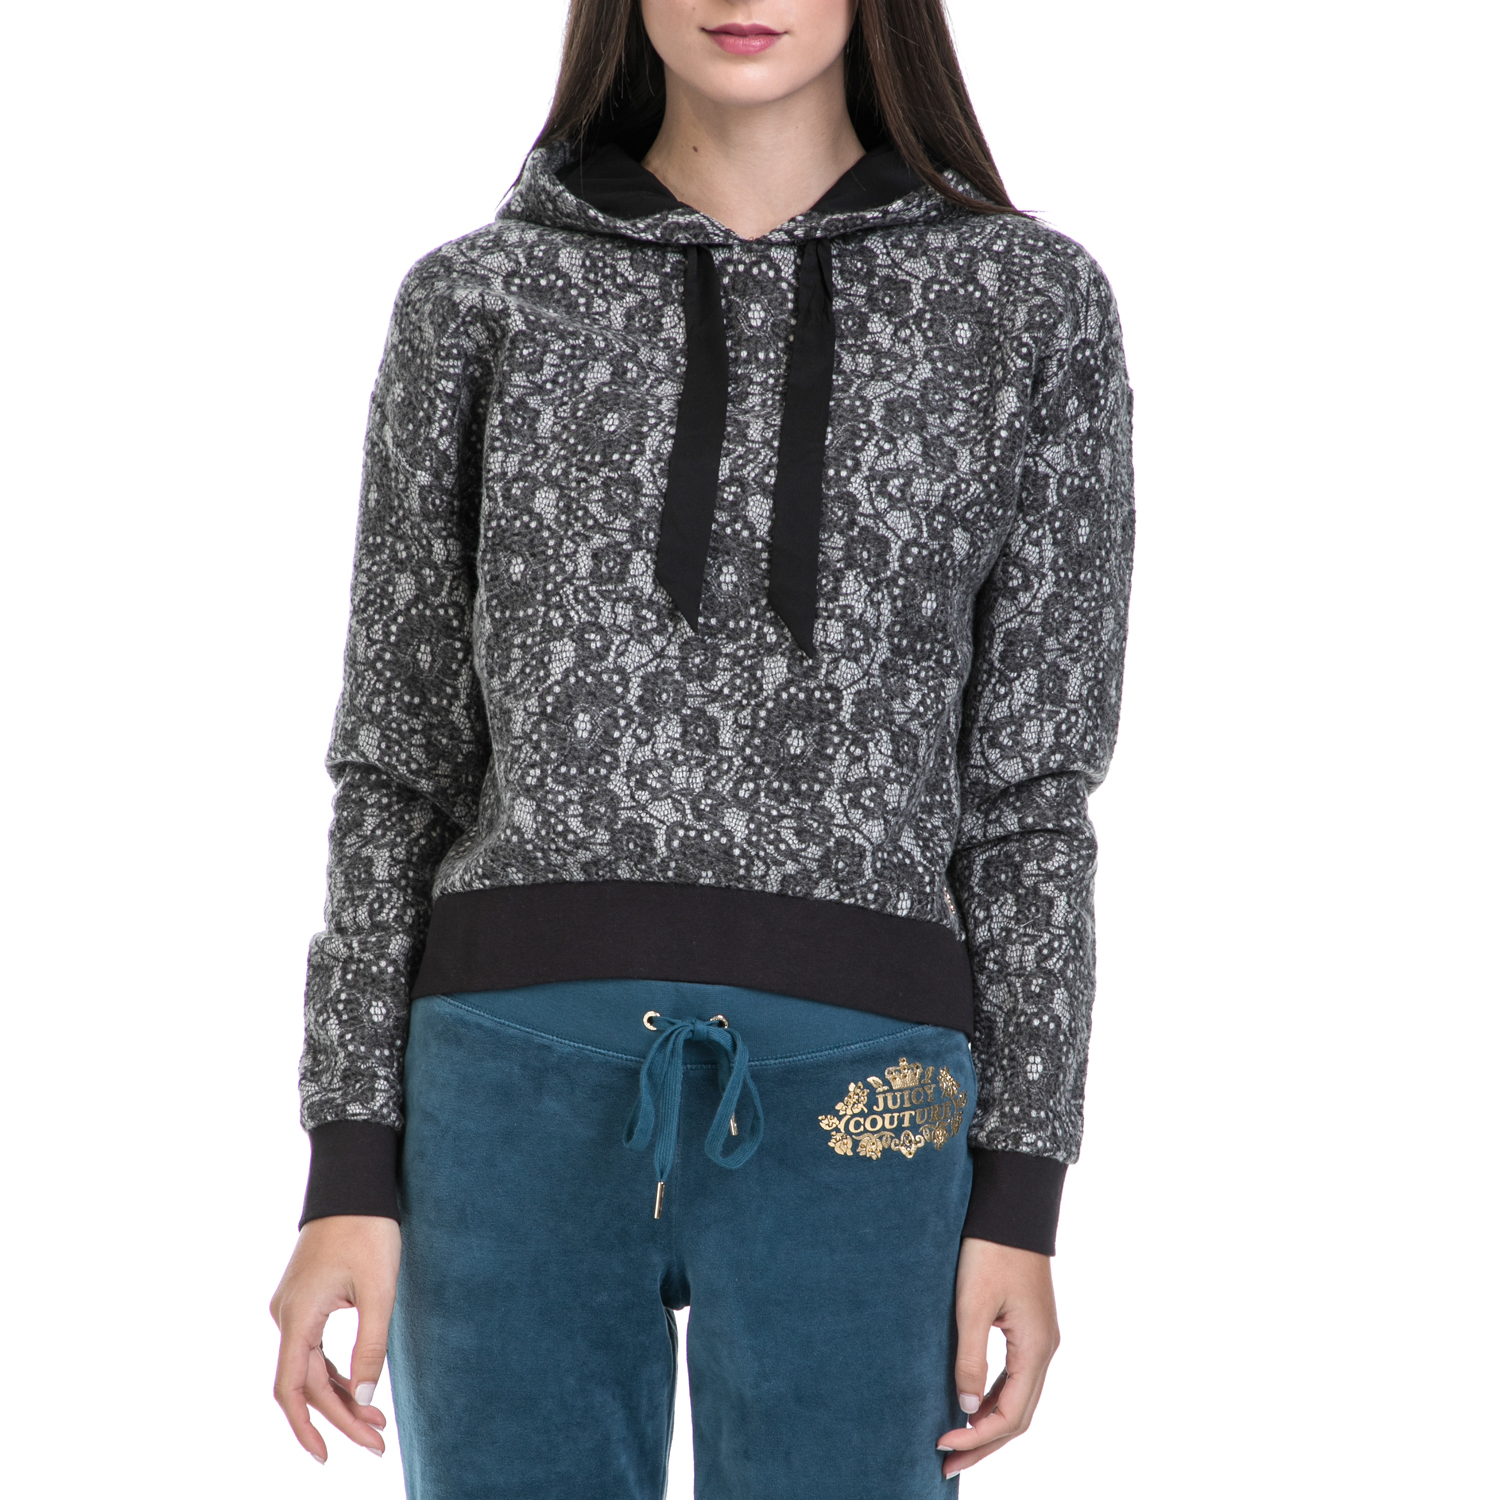 JUICY COUTURE – Γυναικείο φούτερ JUICY COUTURE γκρι